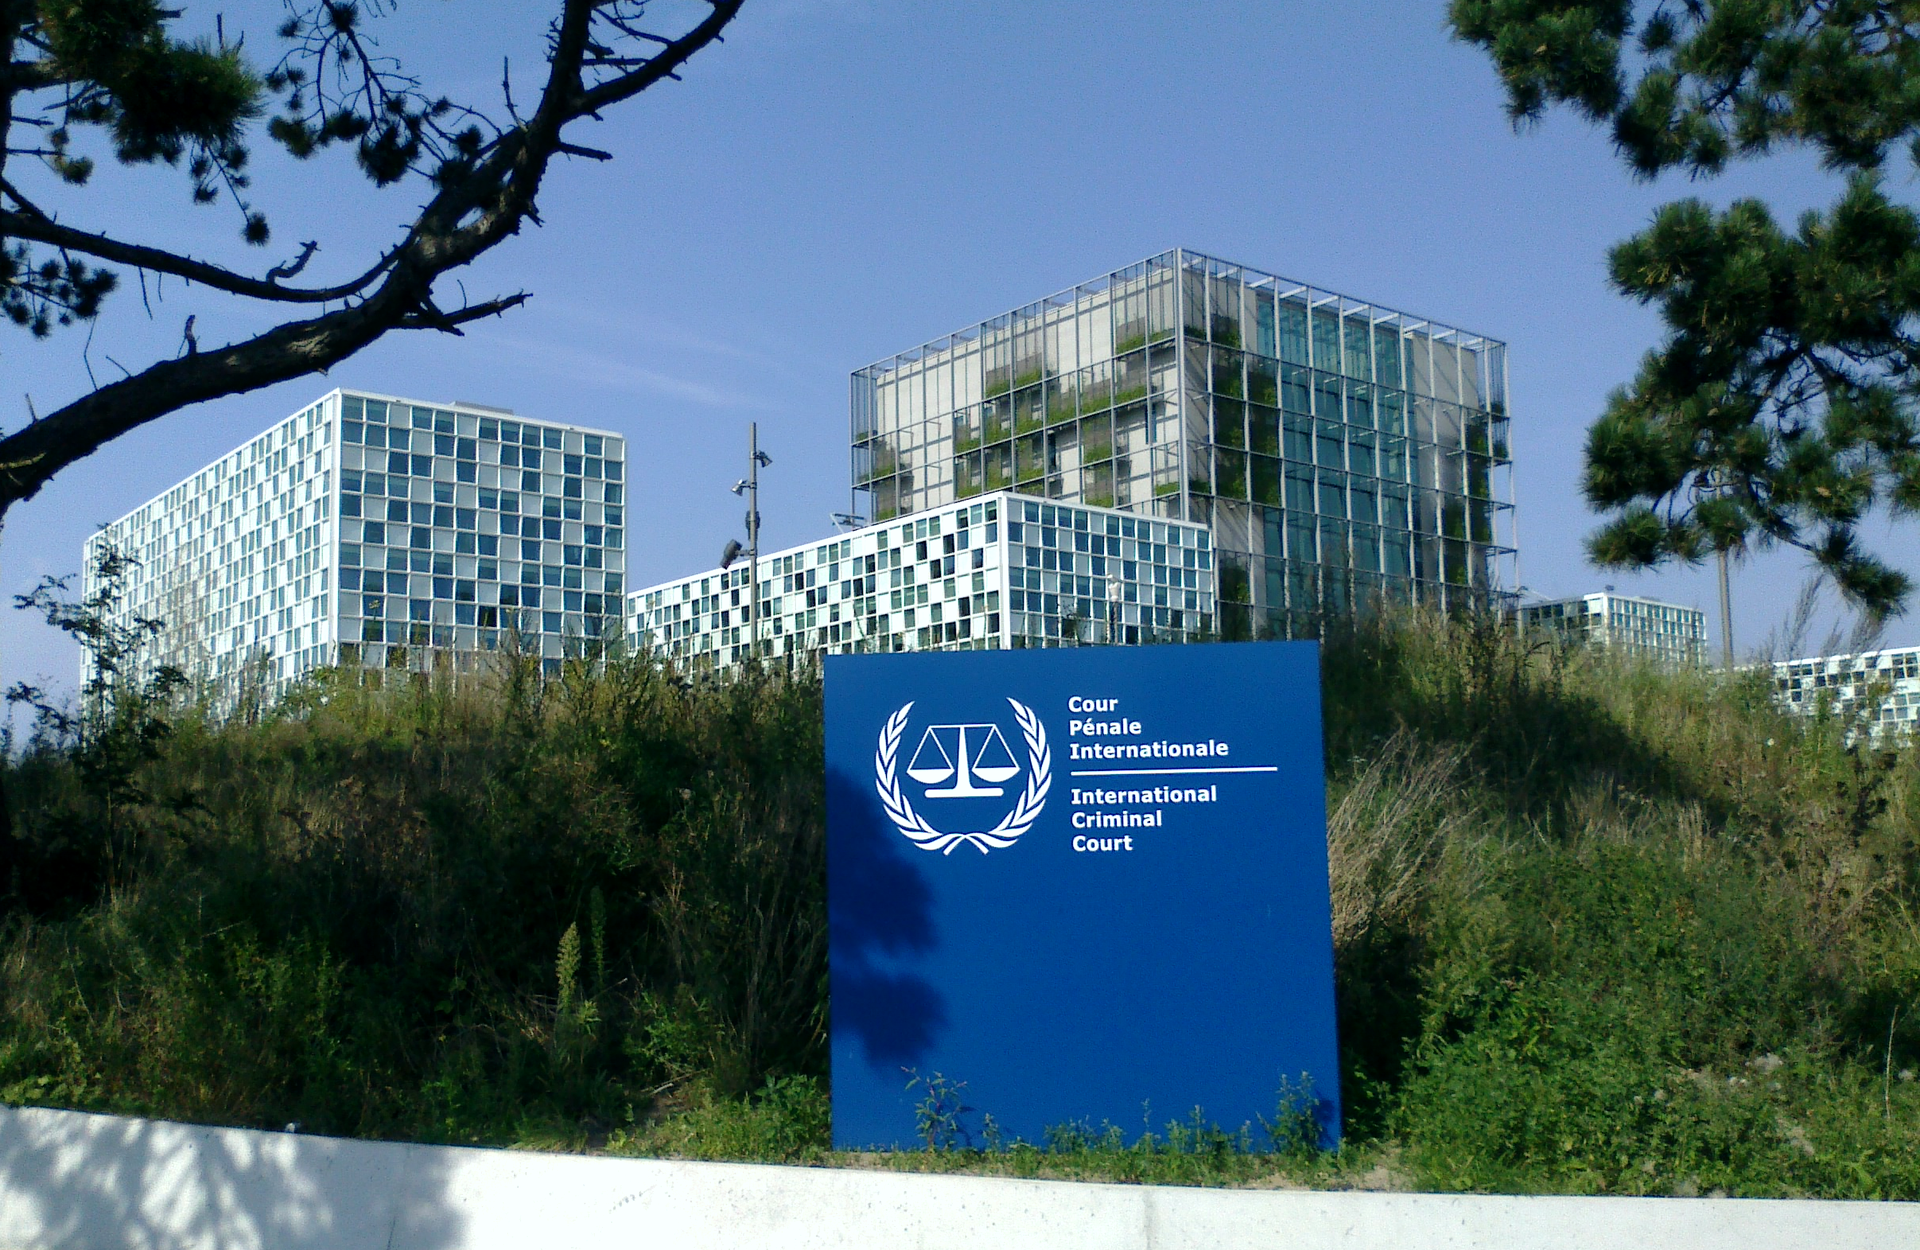 Jean-Pierre Bemba's Request for Compensation for Damages from the International Criminal Court